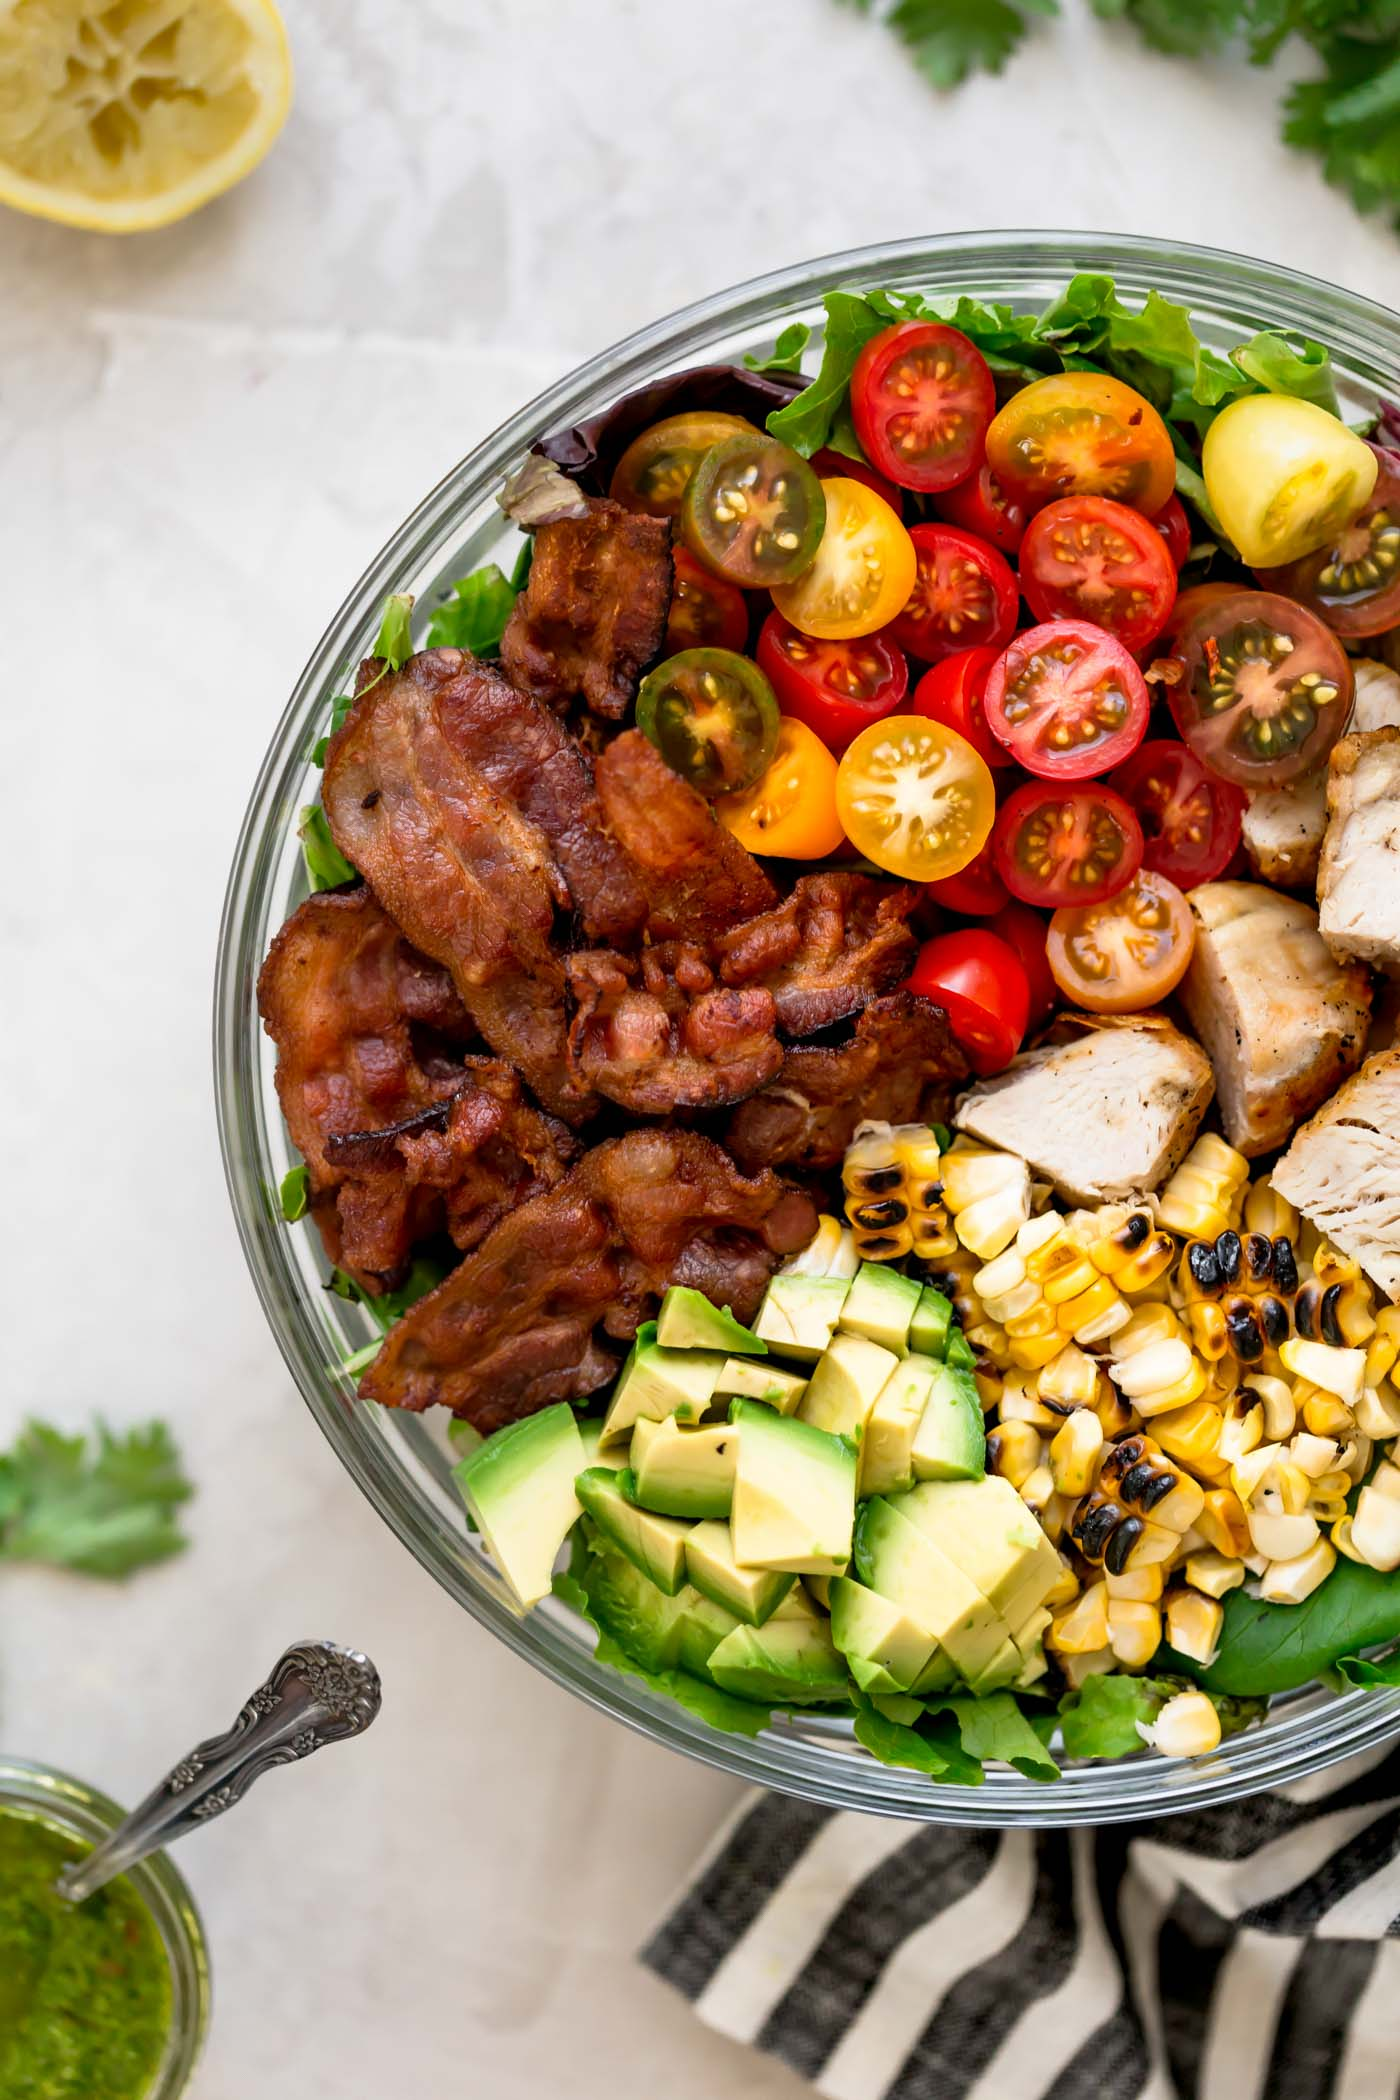 ... A Light U0026 Fresh Blt Salad For Summer Loaded With Bacon, Cherry  Tomatoes, Sweet